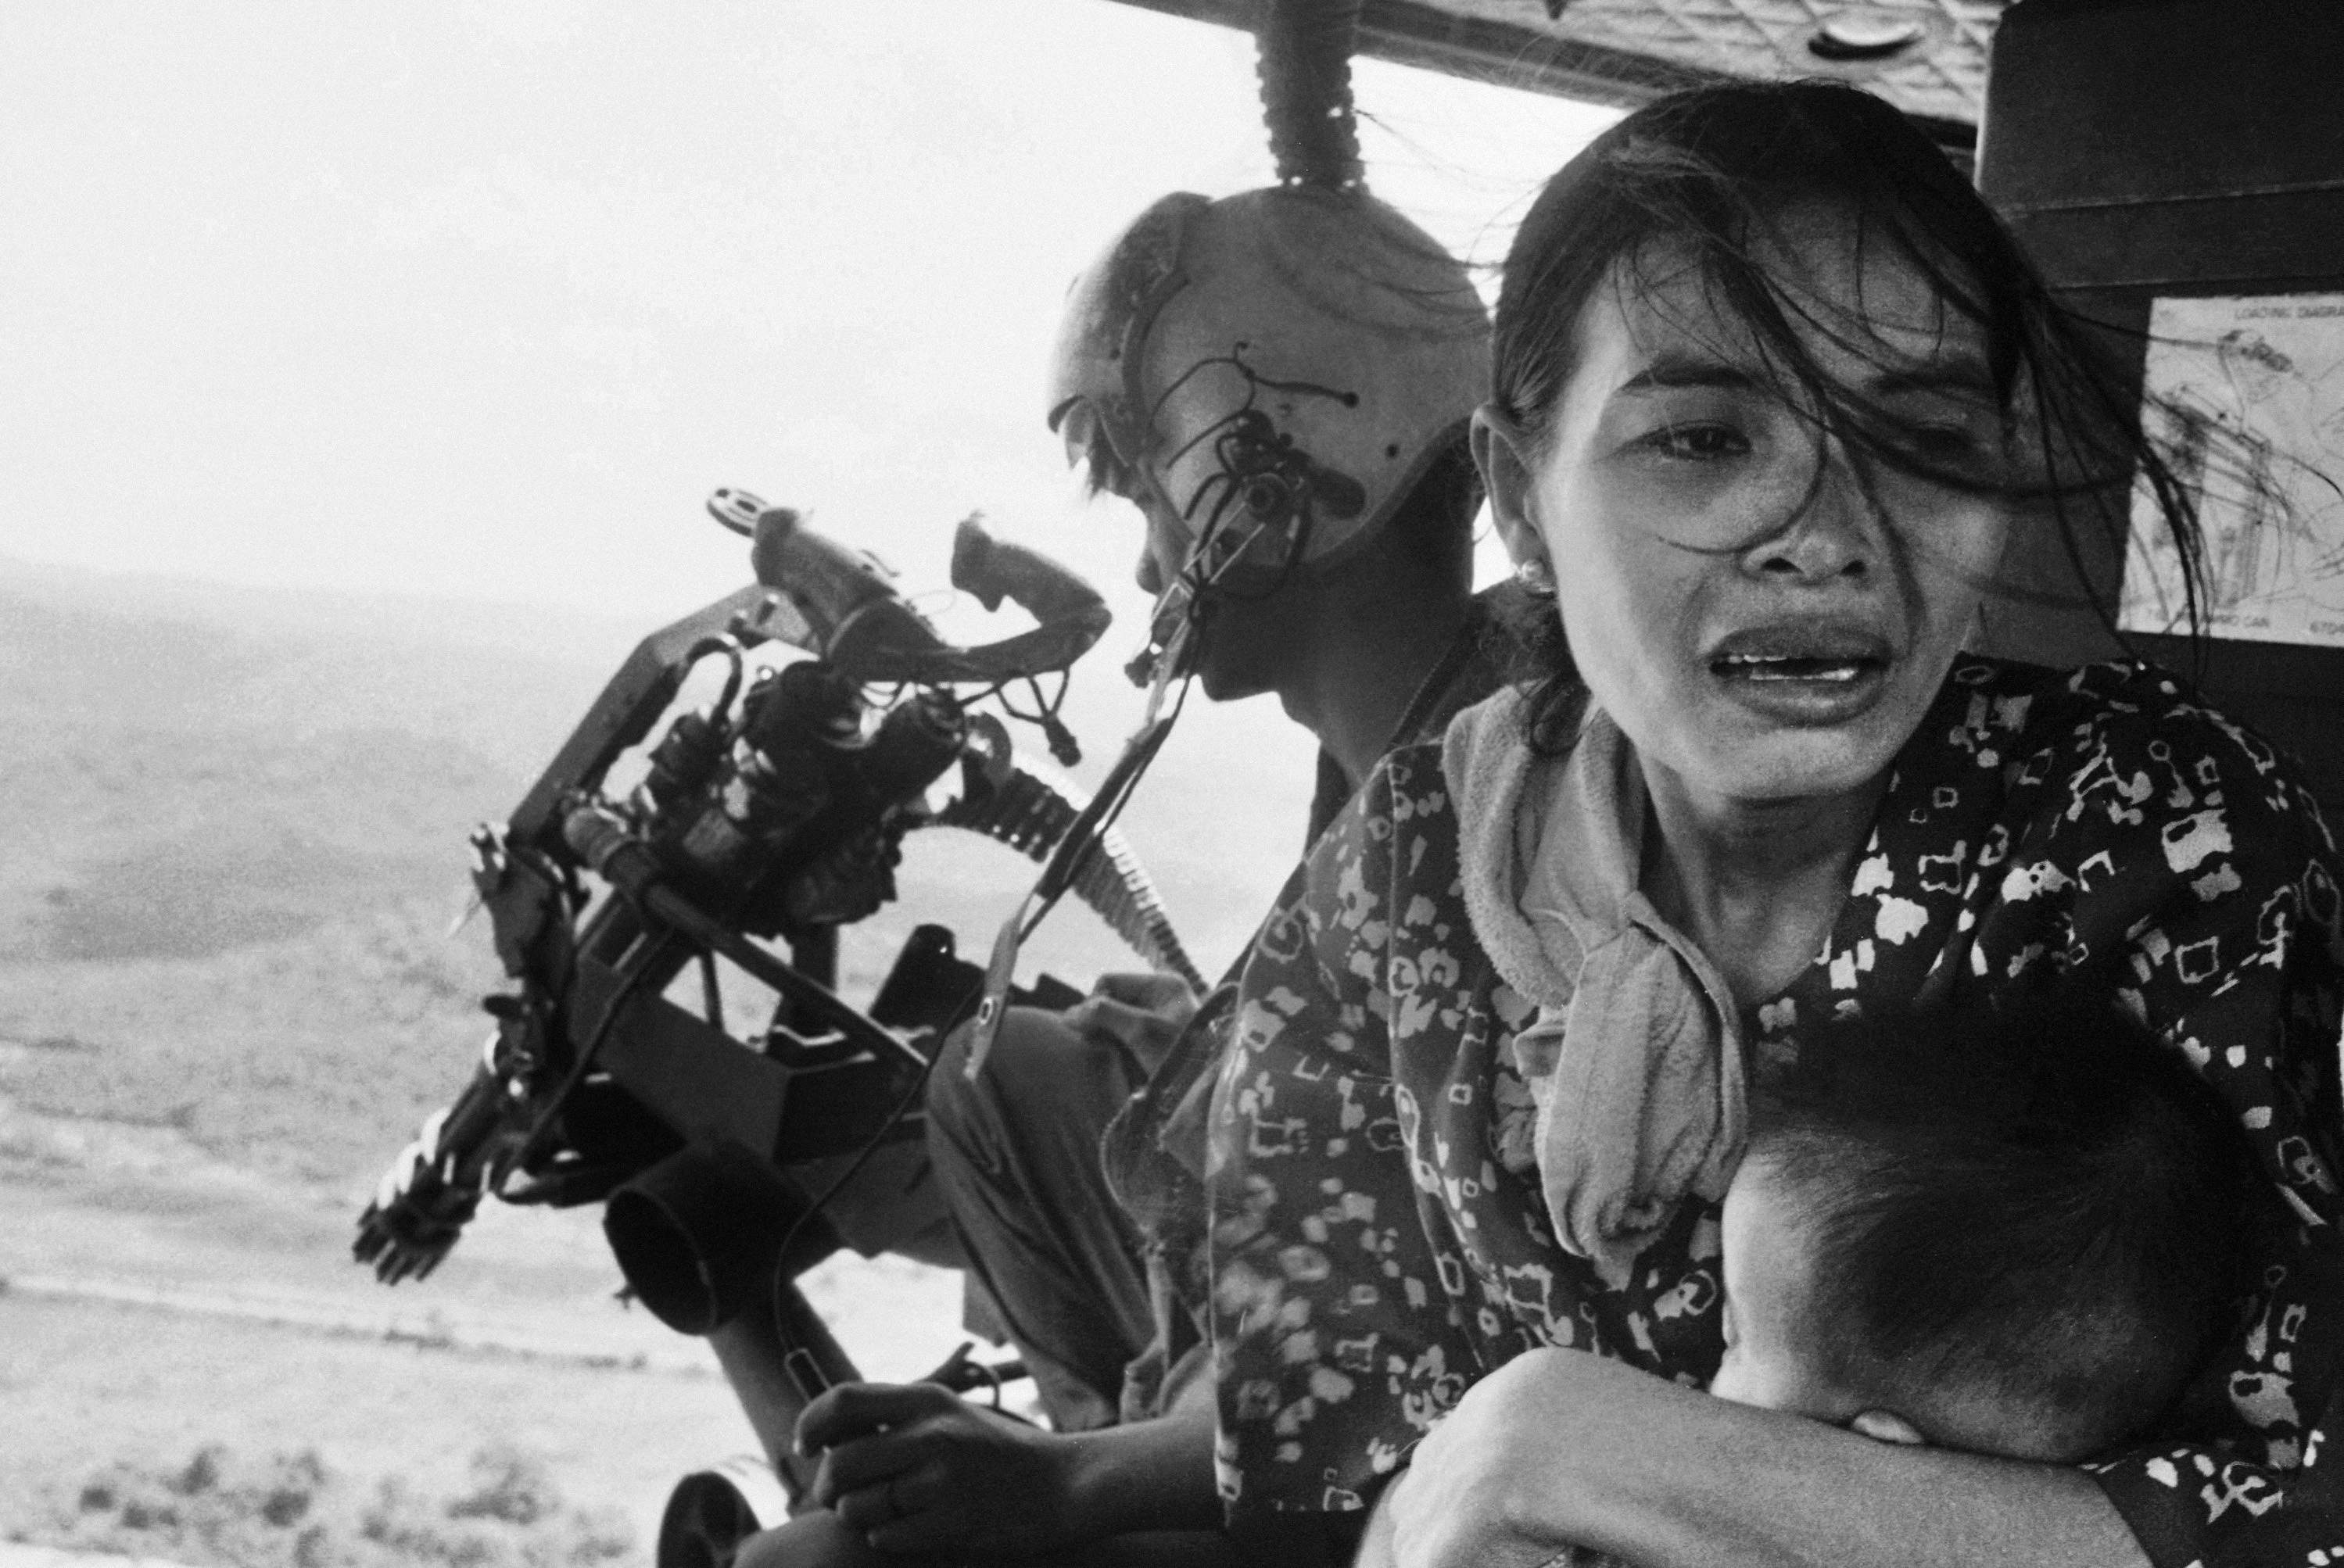 In this March 22, 1975, file photo, a refugee clutches a baby as a government helicopter gunship carries them away near Tuy Hoa, Vietnam, 235 miles northeast of Saigon. They were among thousands fleeing from Communist advances. NICK UT/THE ASSOCIATED PRESS